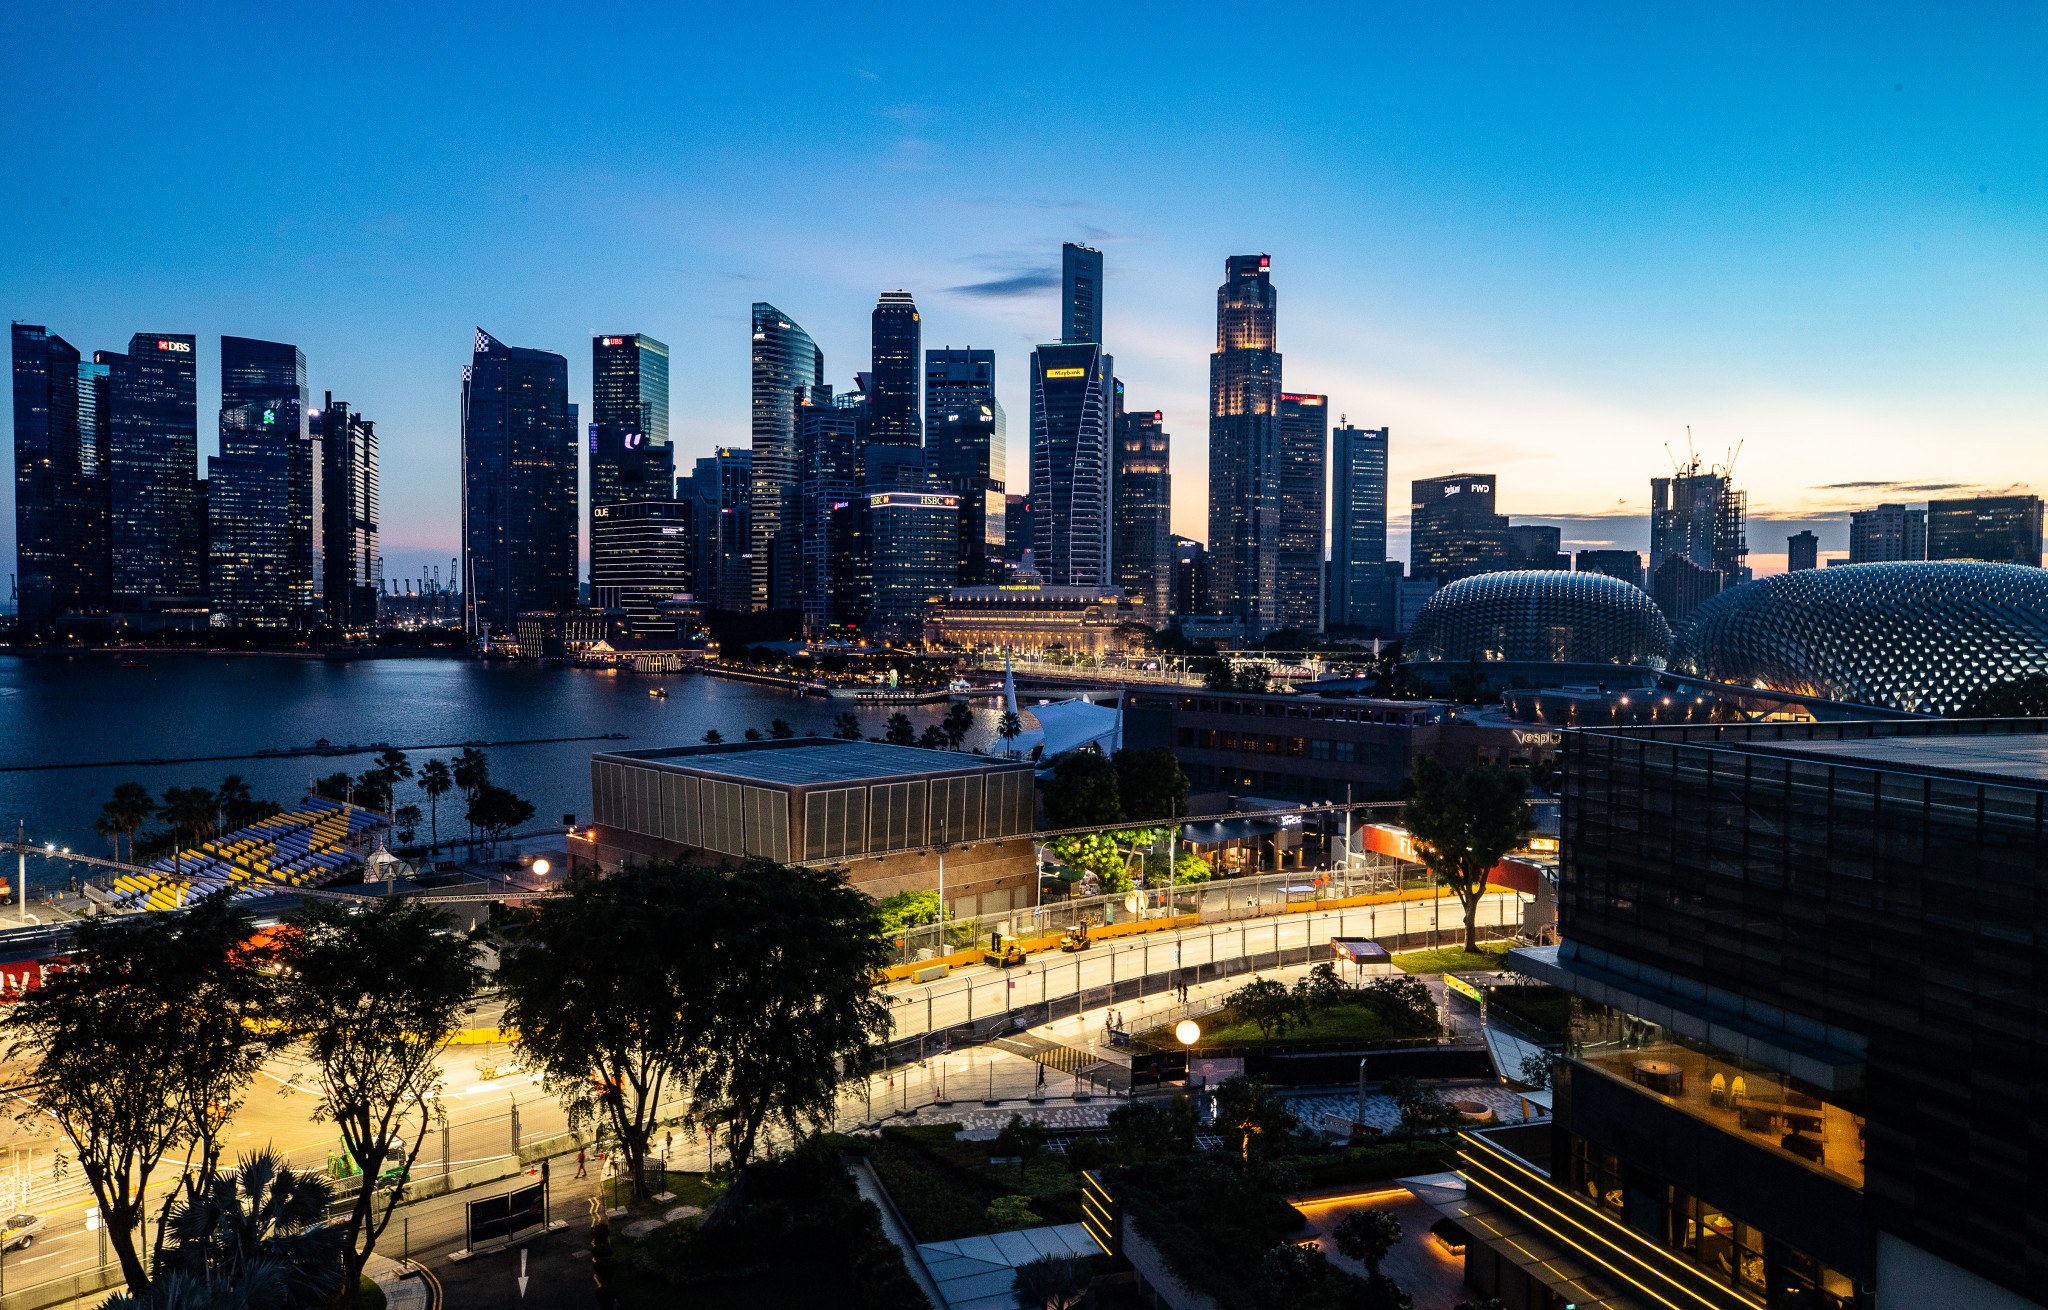 Singapore is to host the inaugural Global Esports Games in 2021 ©Getty Images